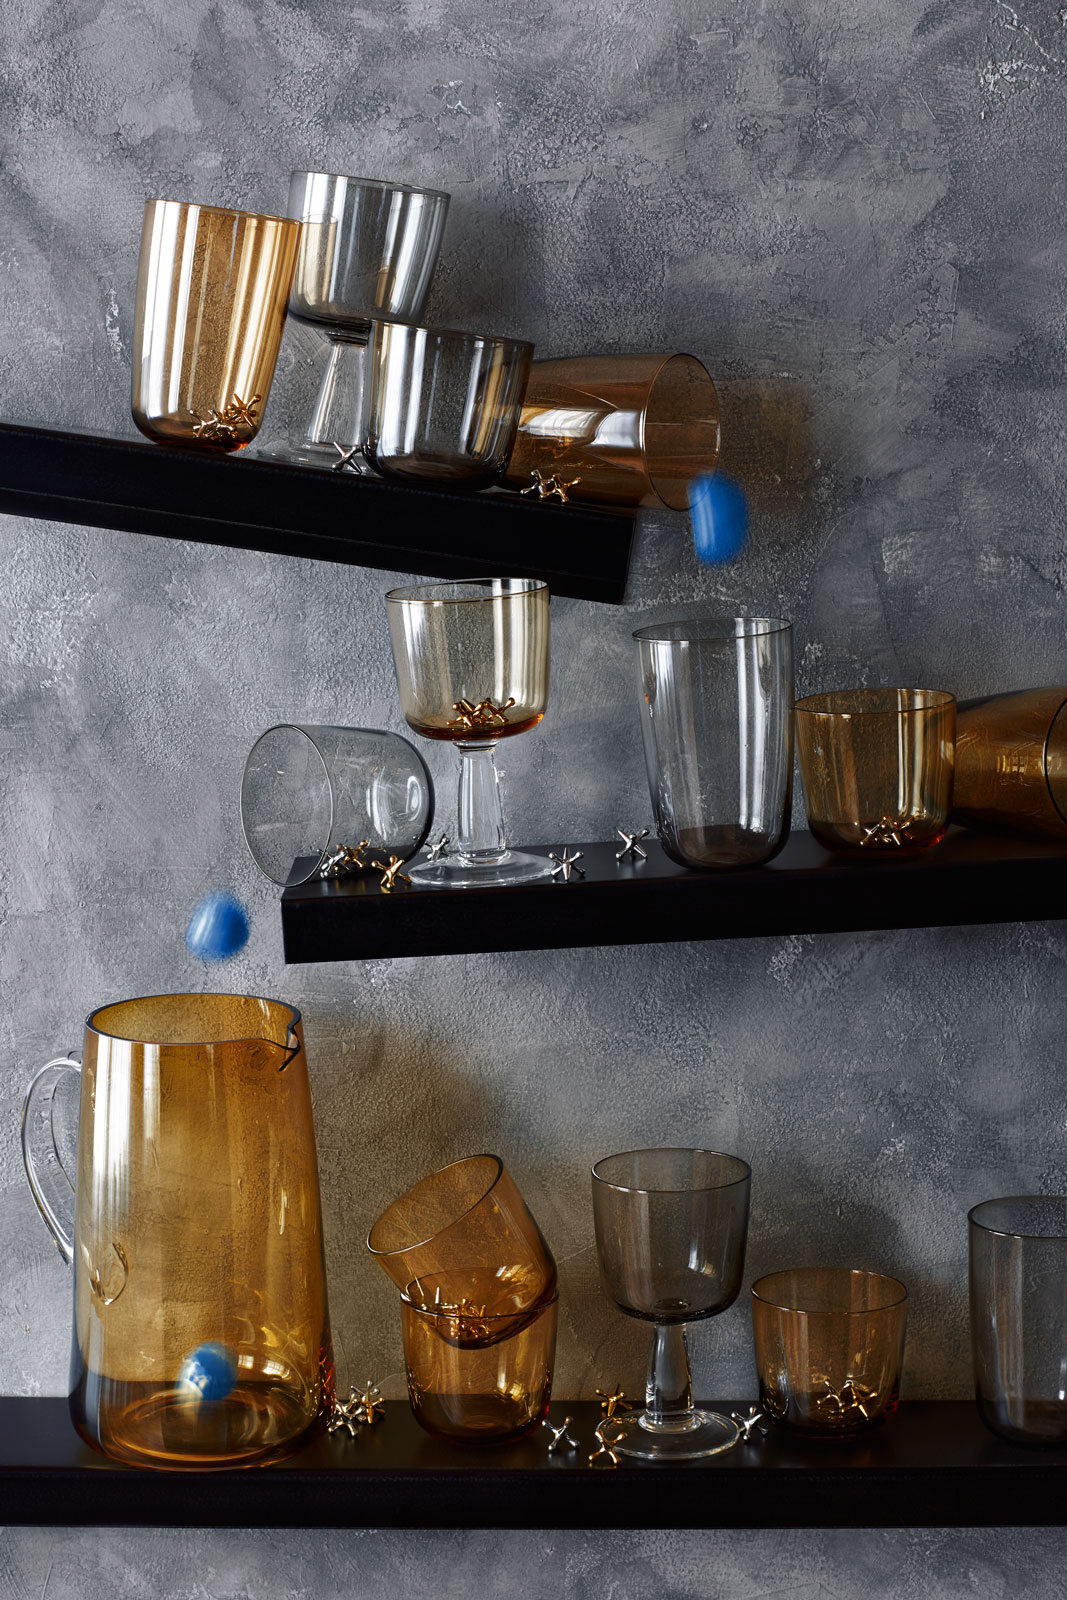 Home-Goods_11_10_15_2_Glasses.jpg